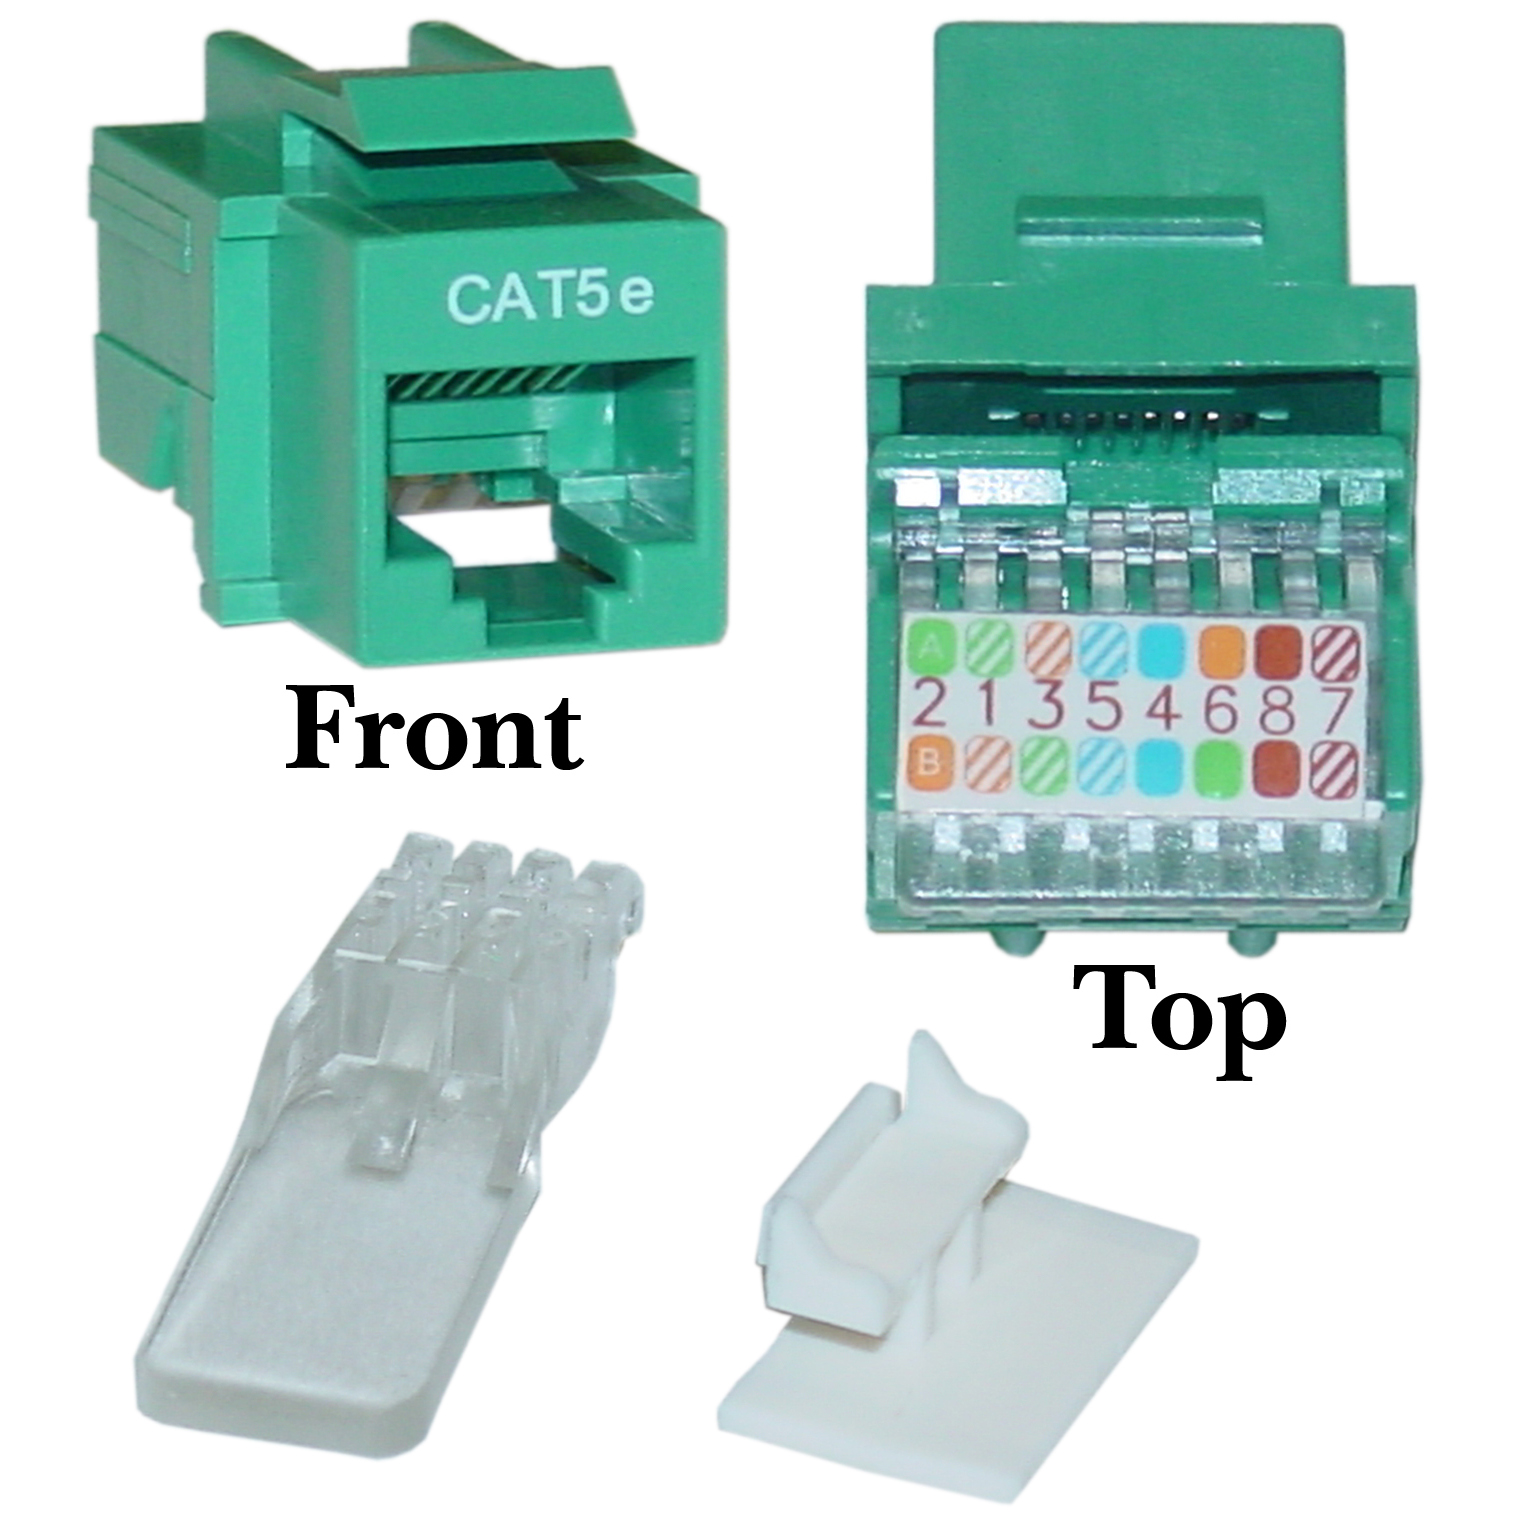 Green Cat5e Rj45 Keystone Jack Toolless Cat 5 Cable Wiring Diagram Furthermore Security Camera Female Part Number 311